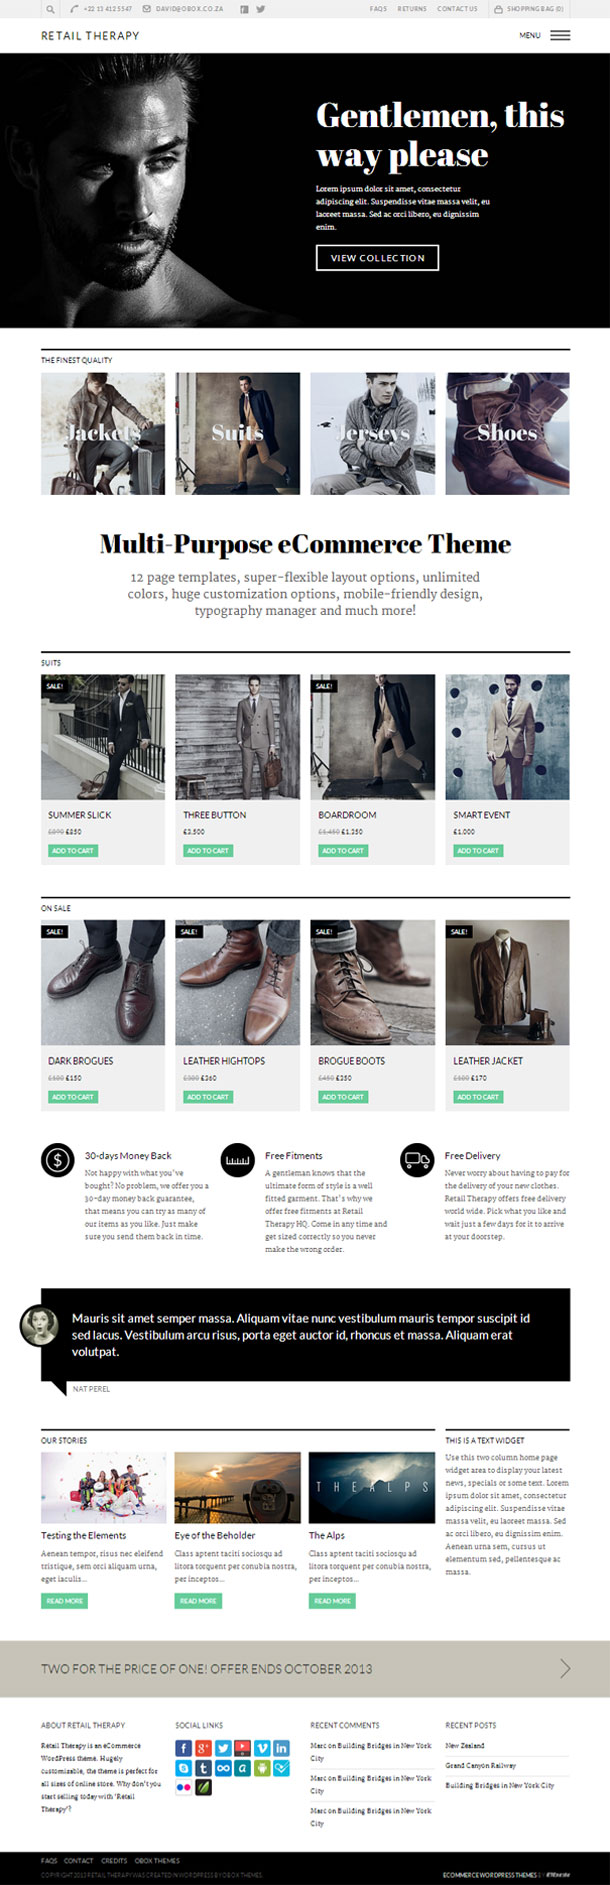 Retail Therapy ECommerce Theme Image